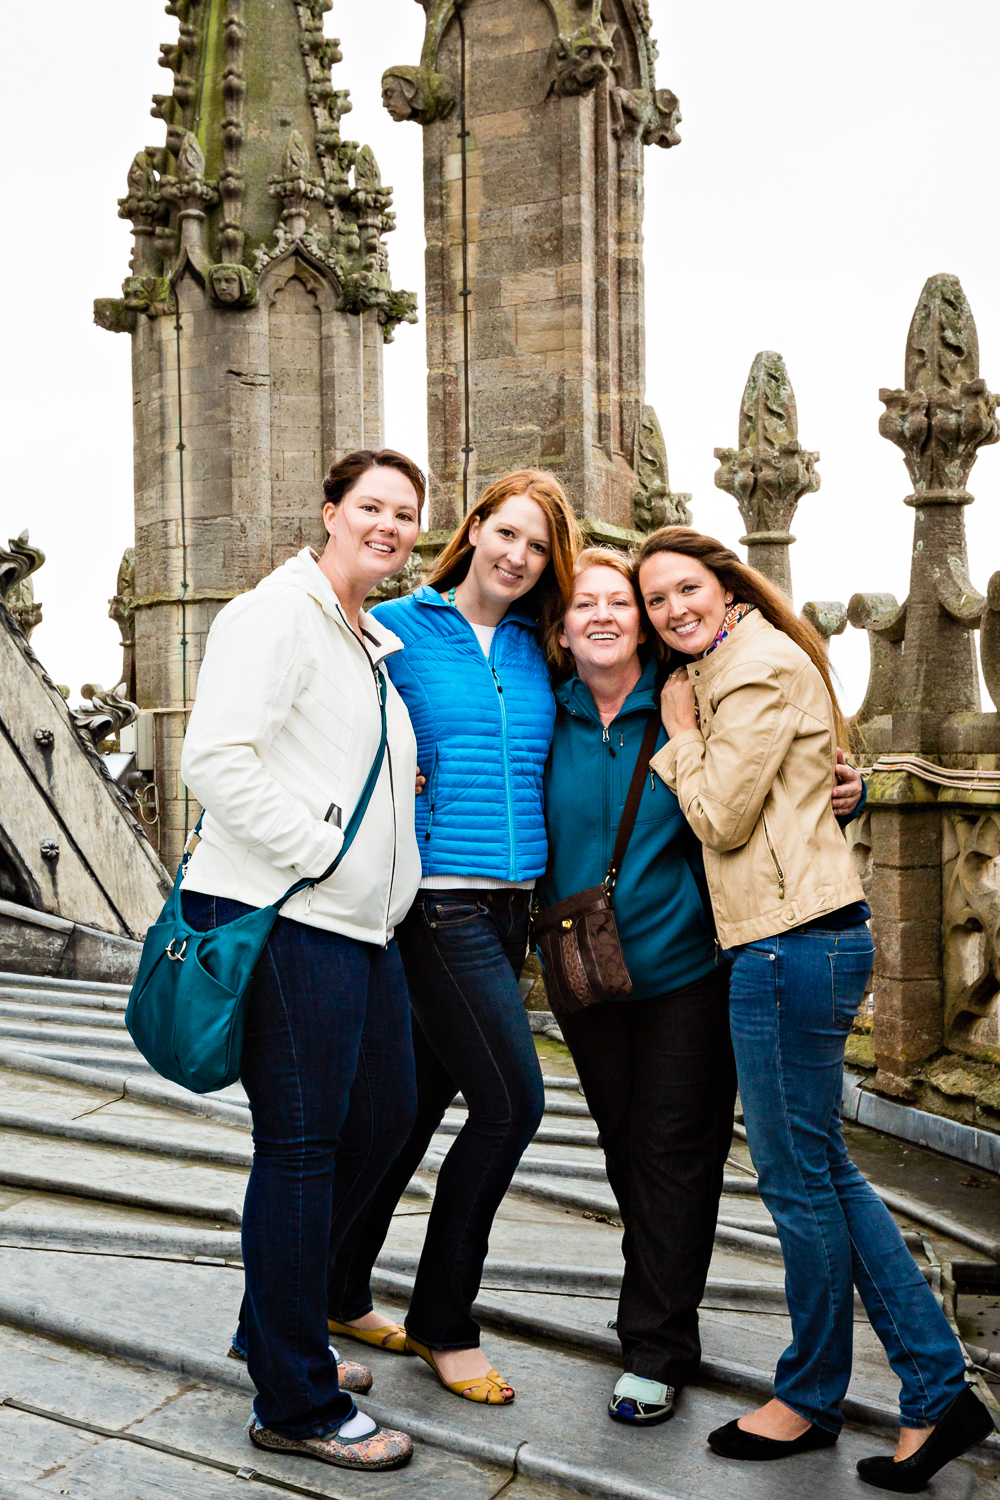 adventure-travel-photography-becky-brockie-cambridgeshire-ely-cathedral-everyone.jpg